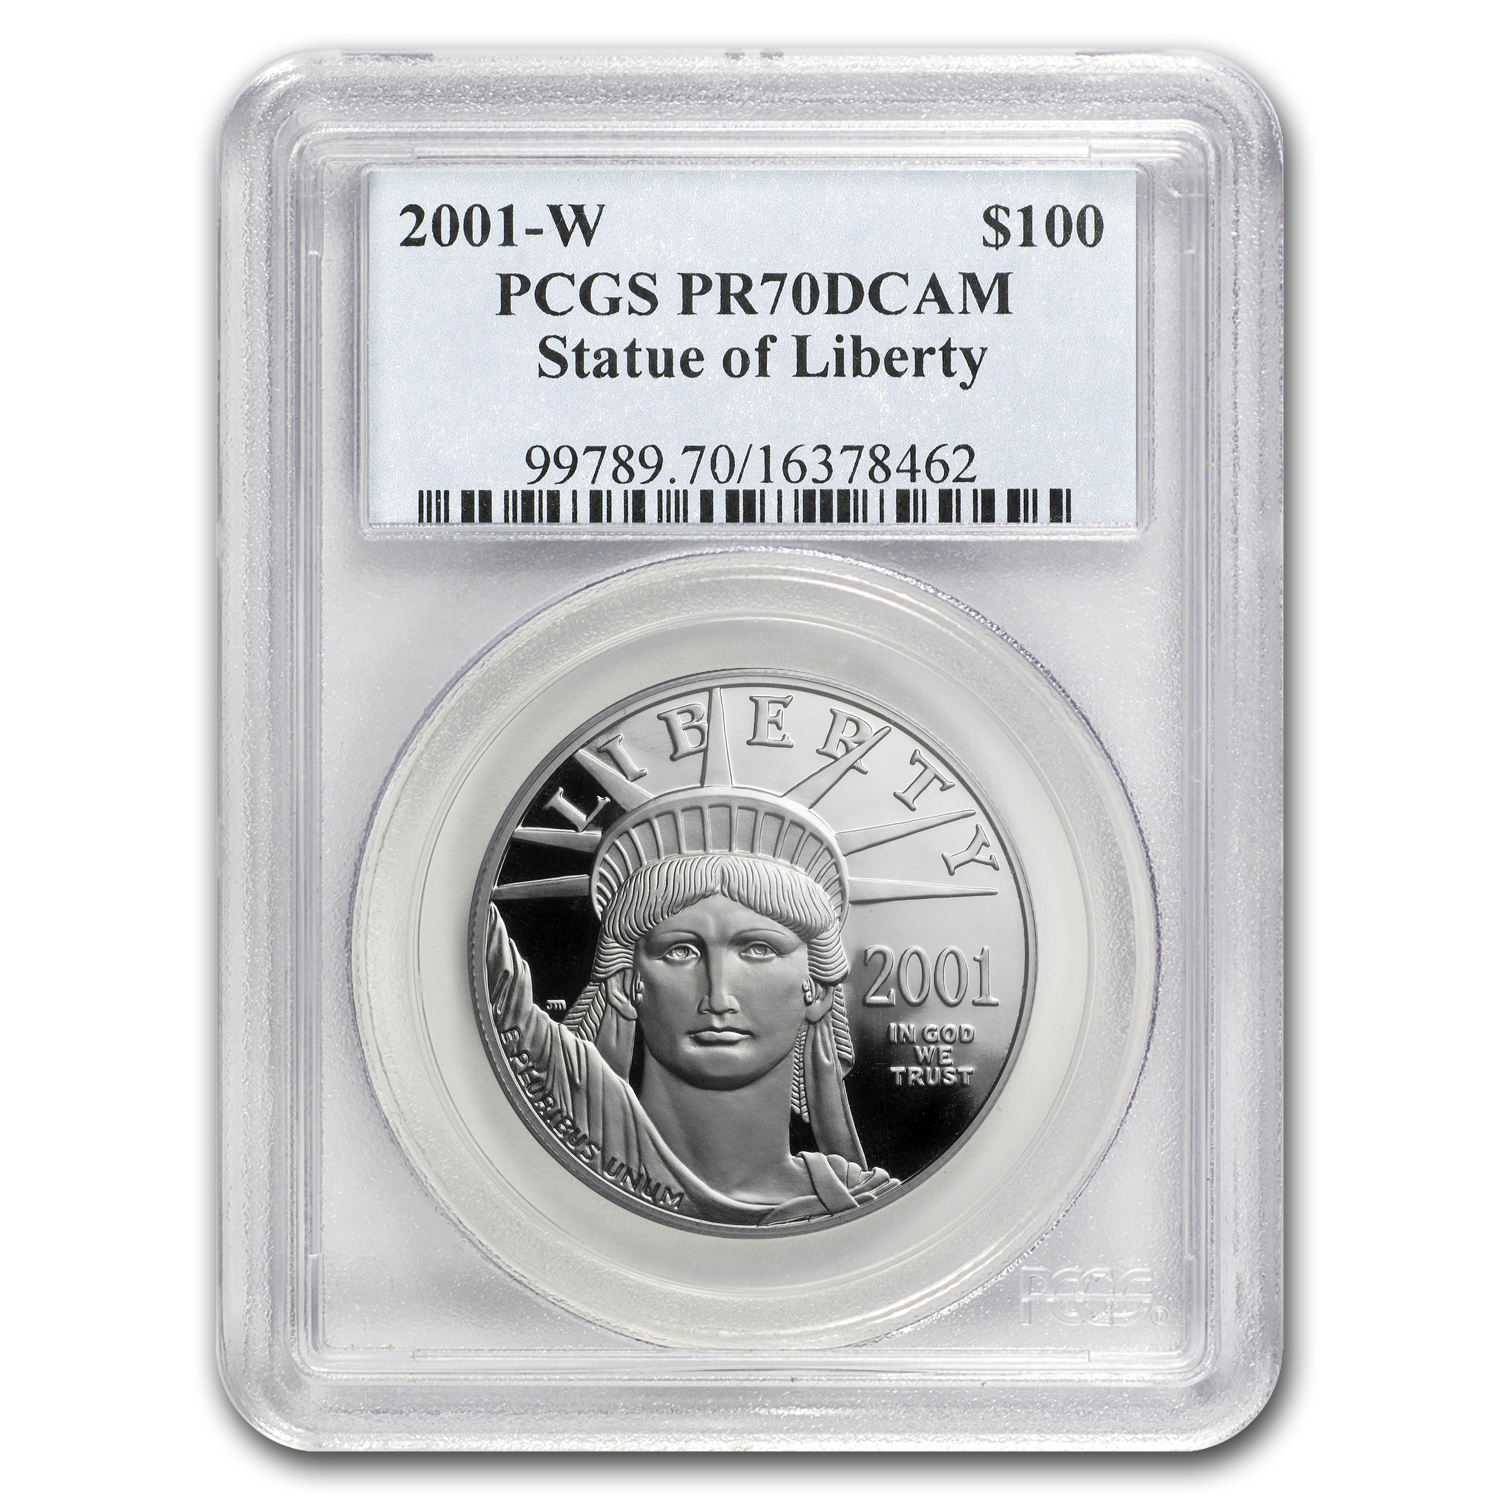 2001-W 1 oz Proof Platinum American Eagle PR-70 PCGS